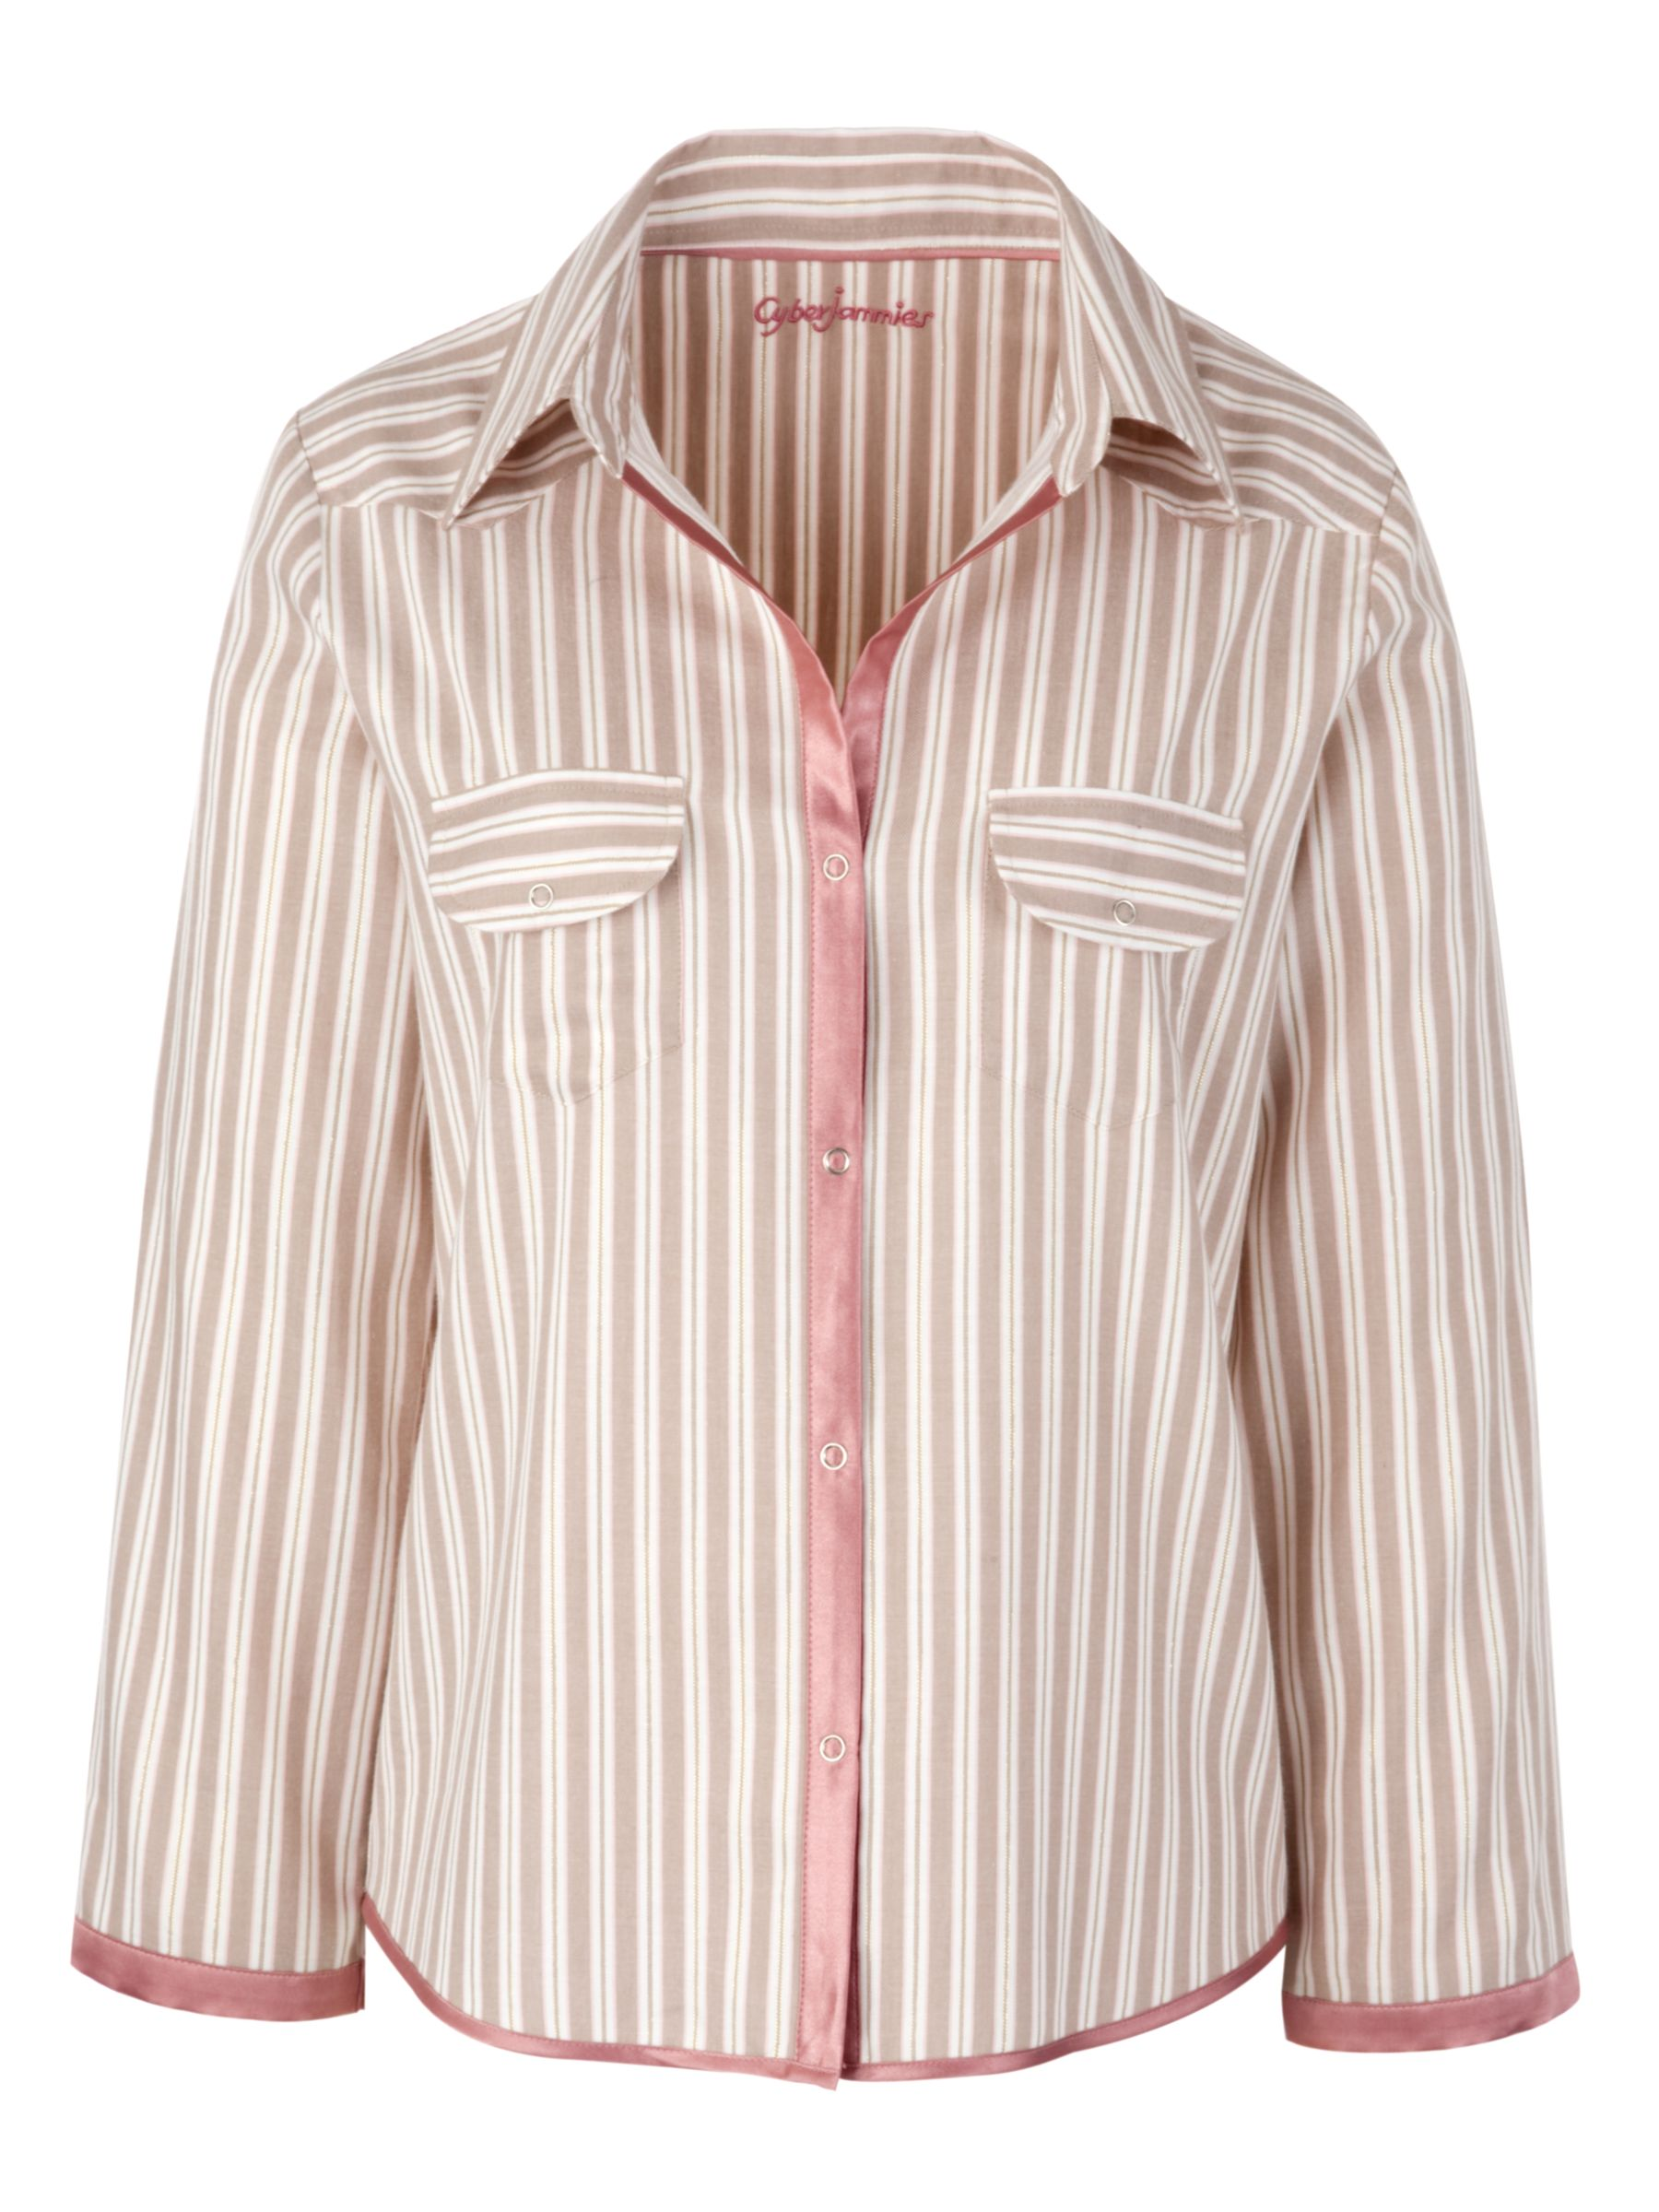 Cyberjammies Dune Stripe Pyjama Top, Rose